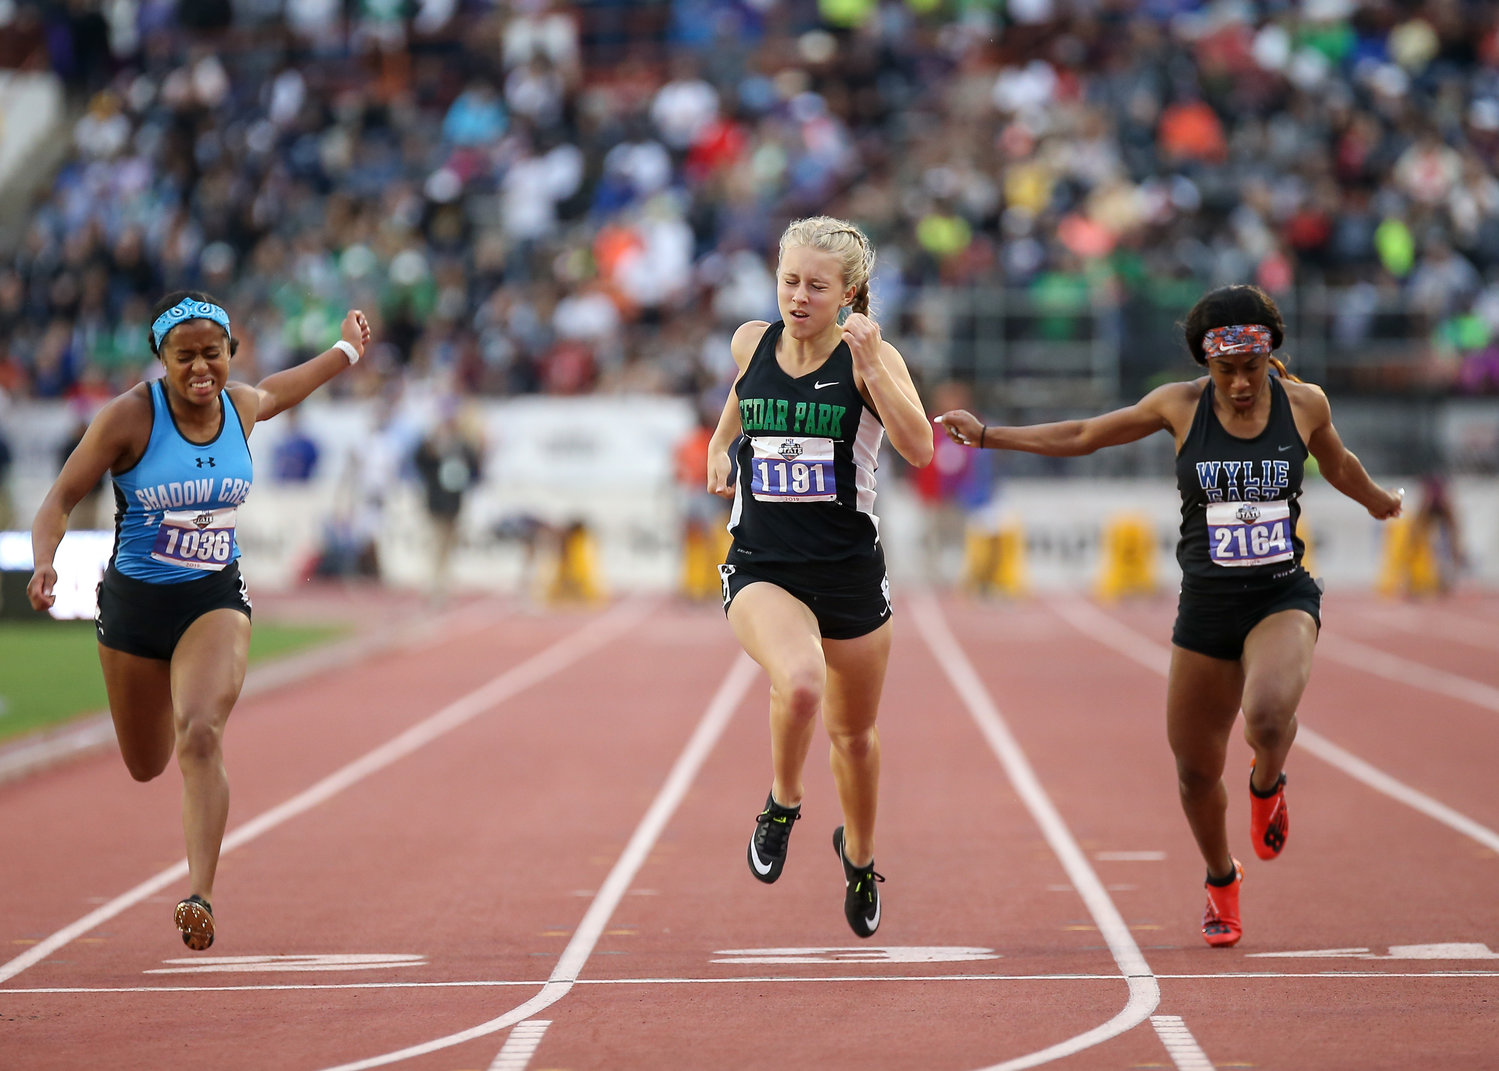 Meghan Wilcox of Cedar Park High School crosses the finish line third for a bronze medal in the Class 5A girls 100-meter dash at the UIL State Track and Field Meet on Friday, May 10, 2019 at Mike A. Myers Stadium in Austin, Texas.